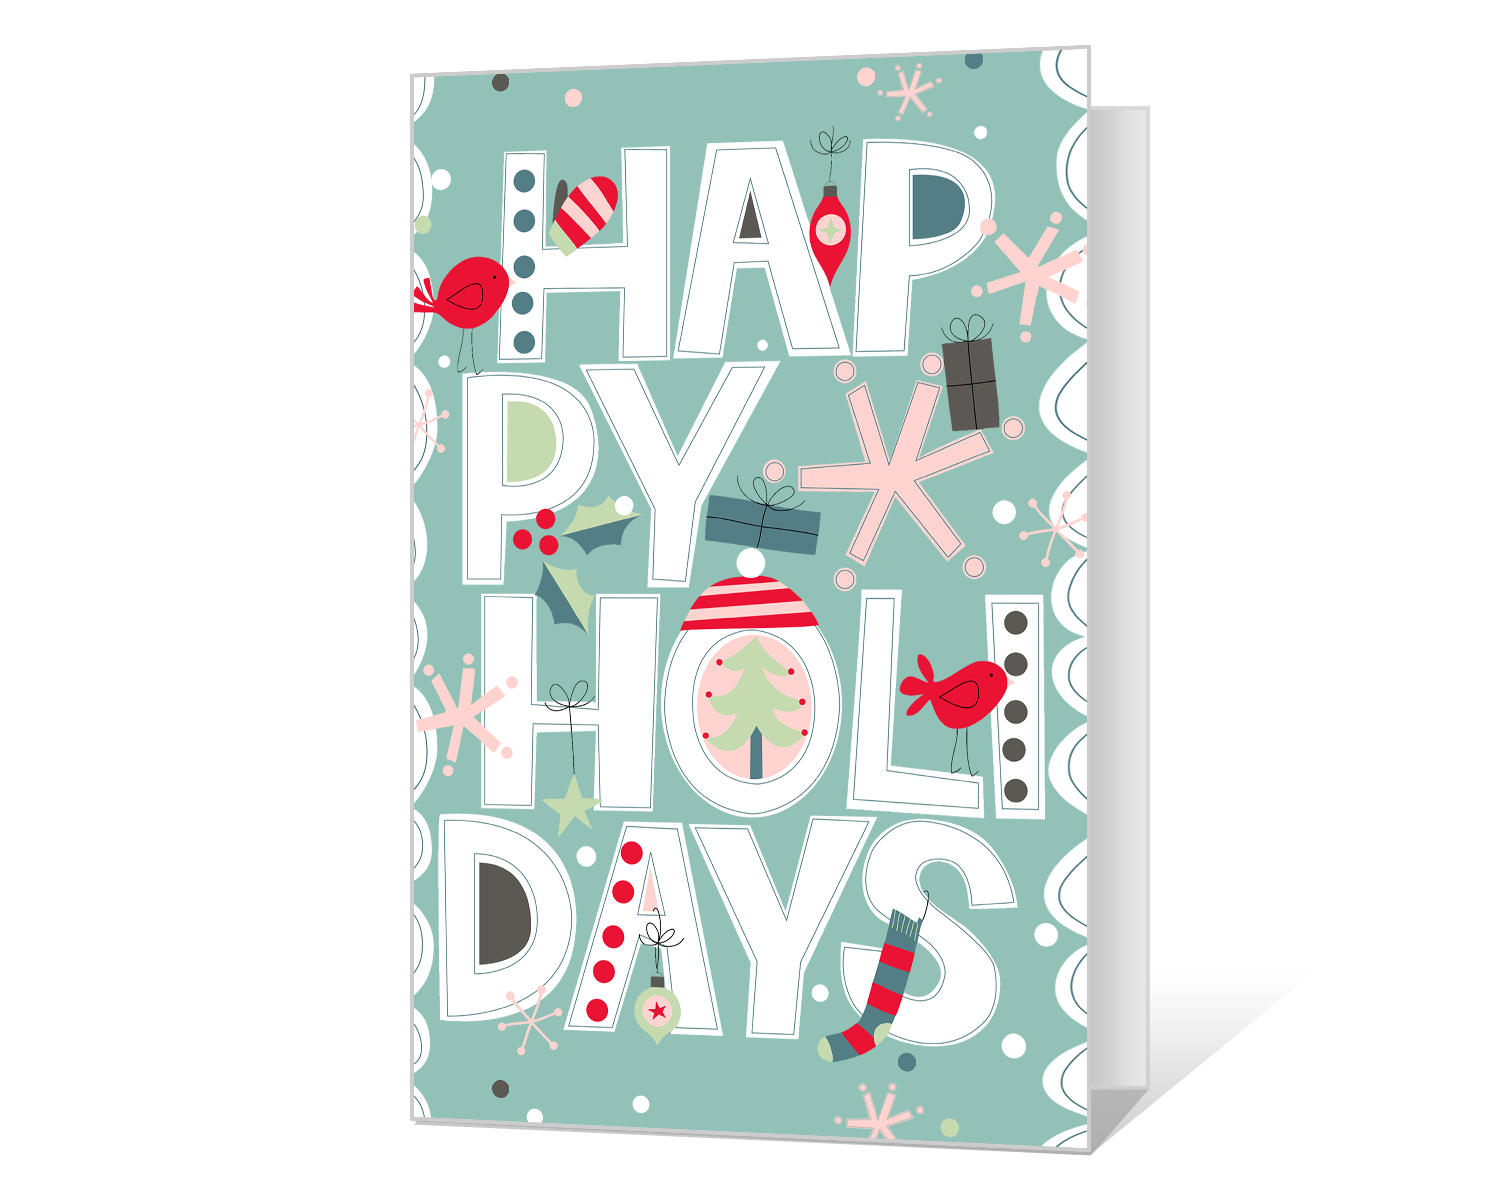 image relating to Happy Holidays Printable Card named Delighted Vacations Printable - American Greetings